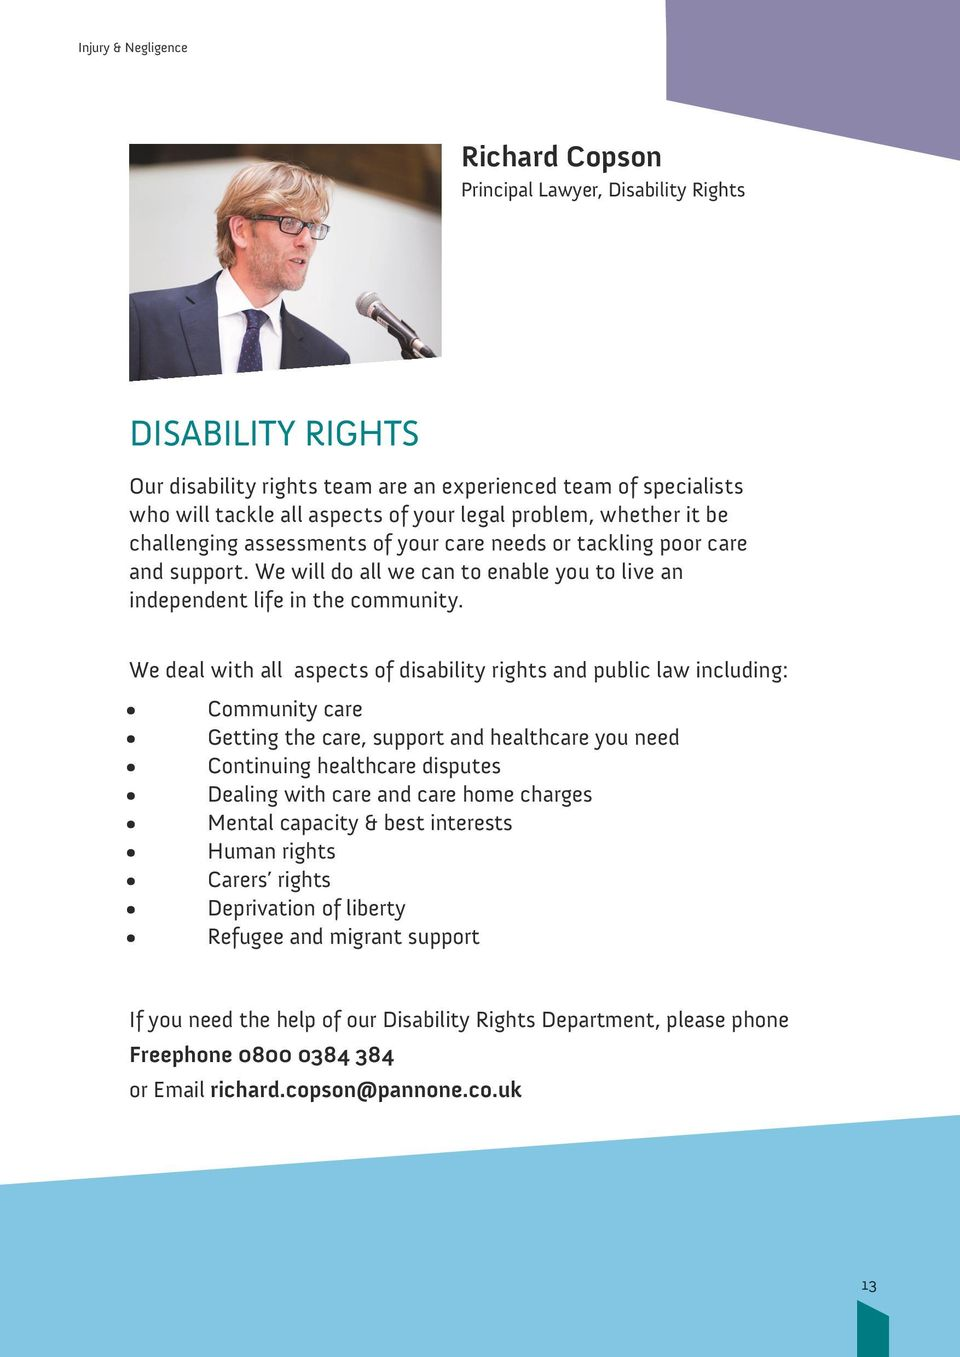 We deal with all aspects of disability rights and public law including: Community care Getting the care, support and healthcare you need Continuing healthcare disputes Dealing with care and care home